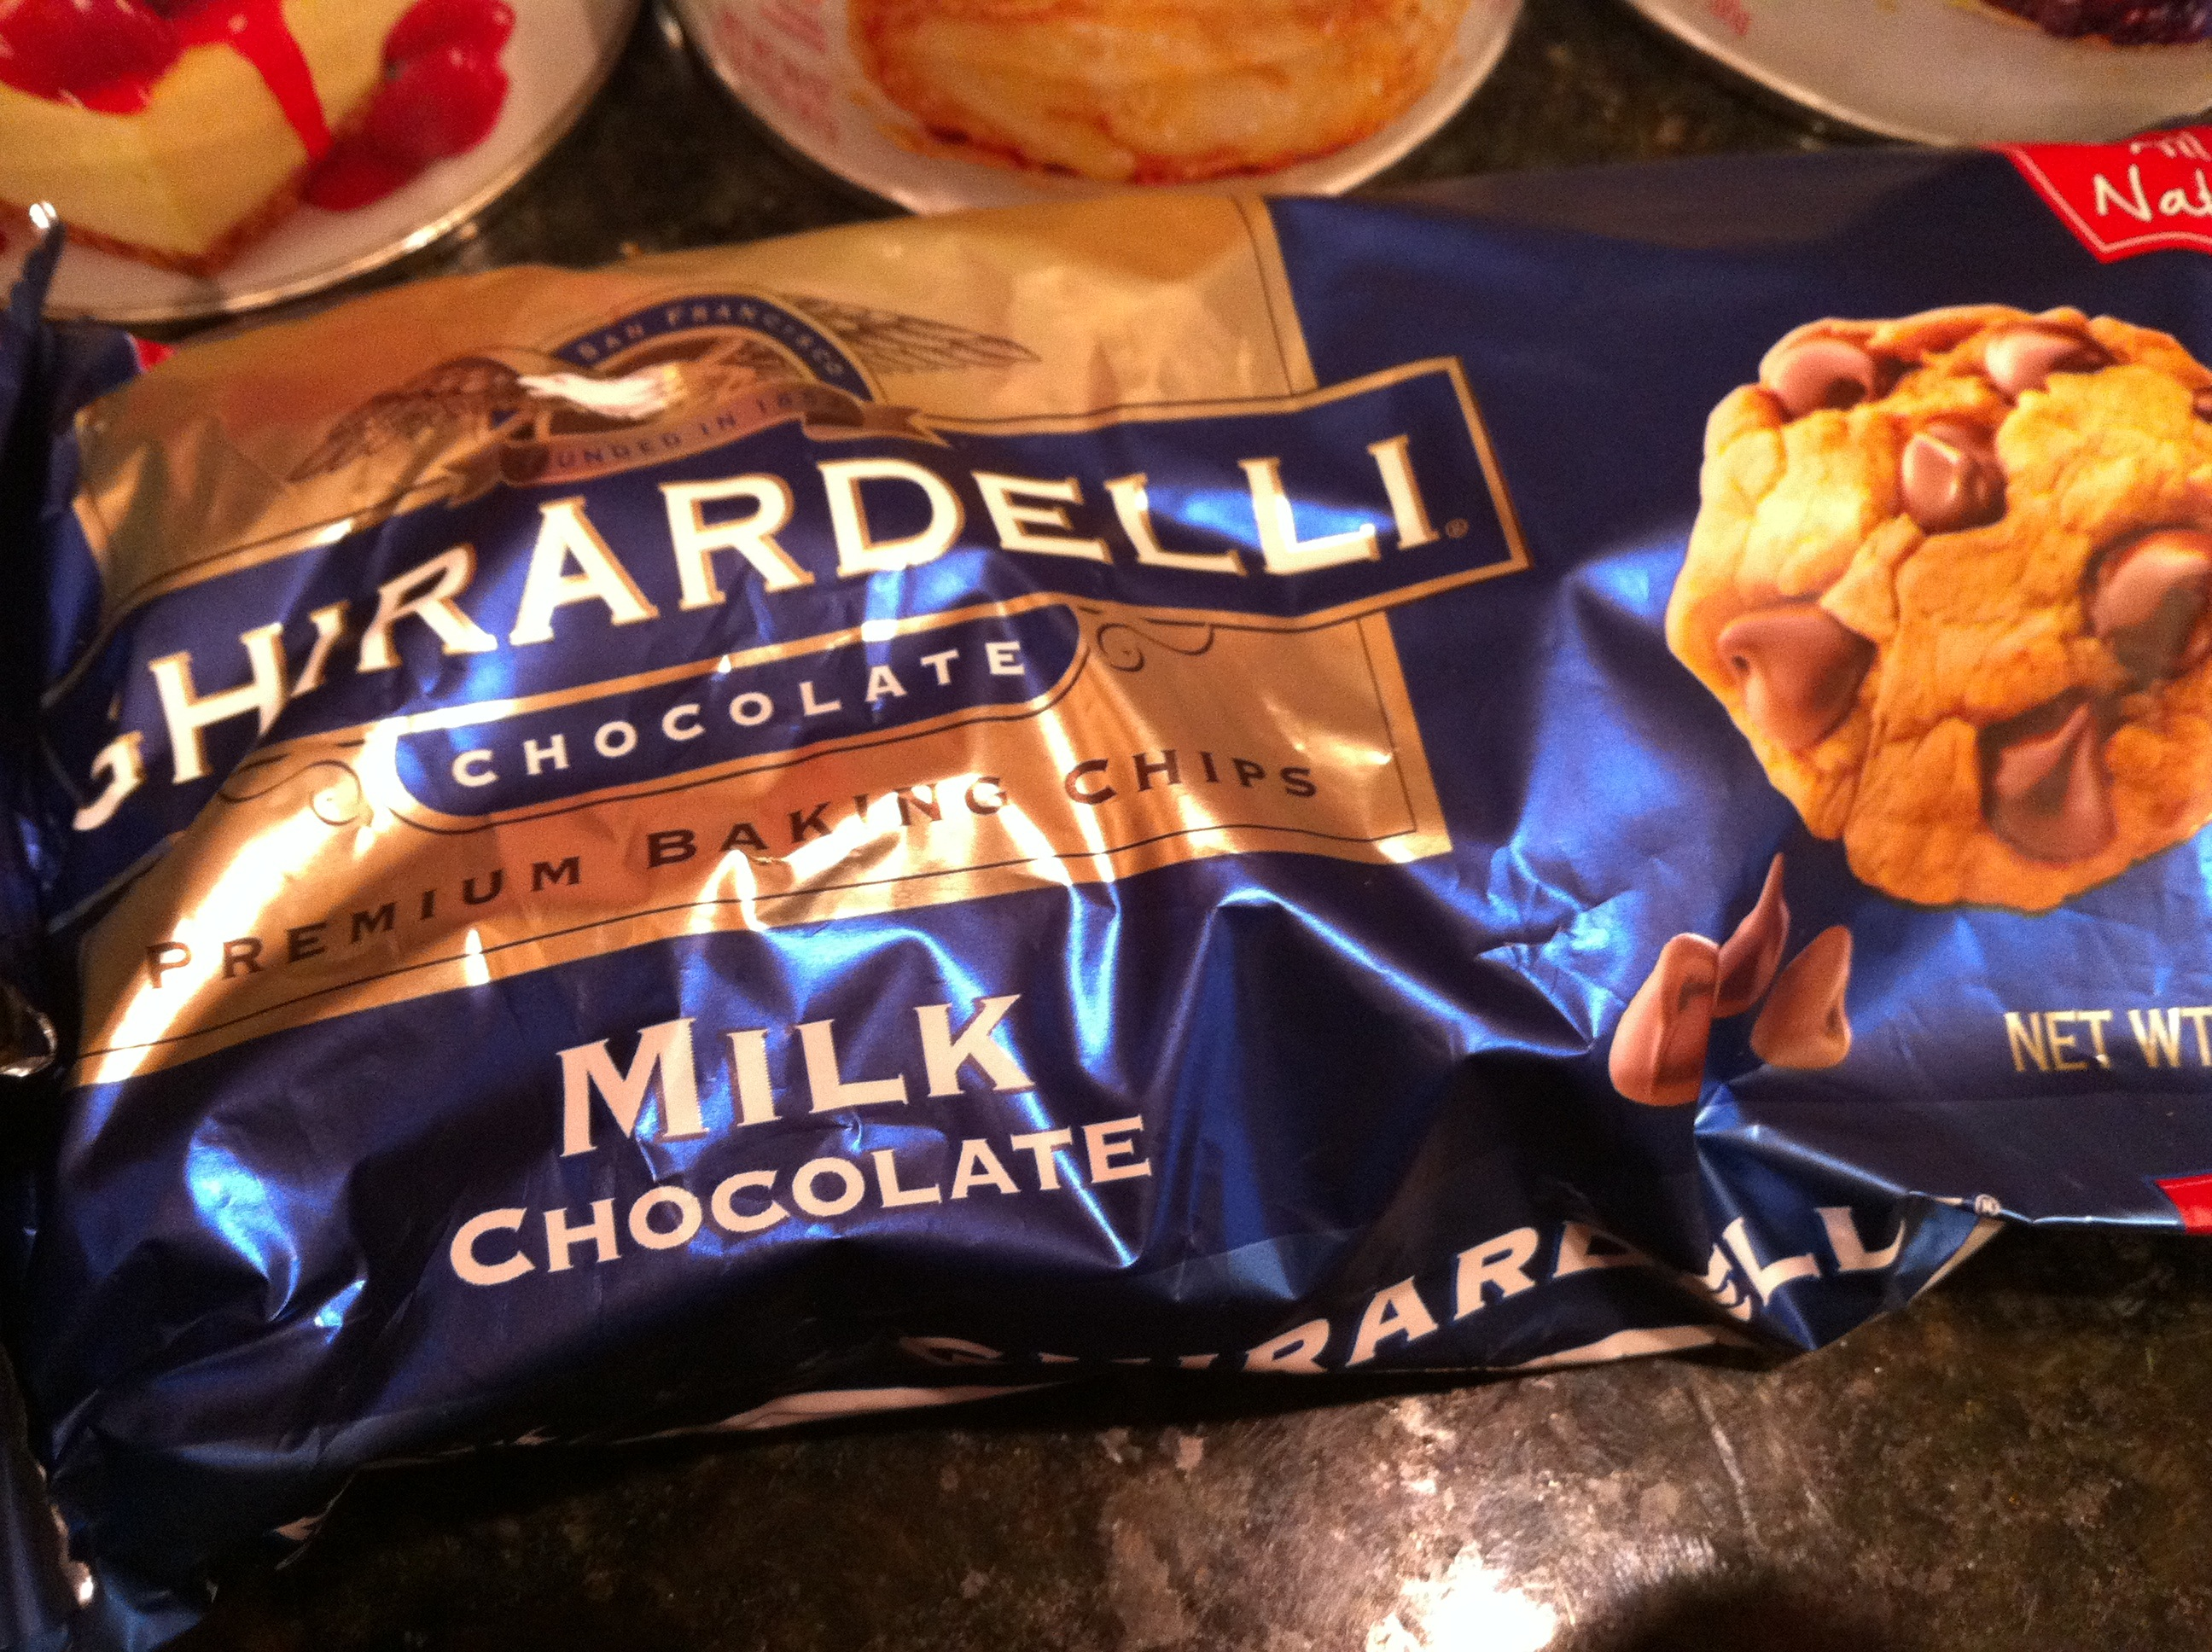 Ghiradelli Milk Chocolate Chips for Belgian Waffles